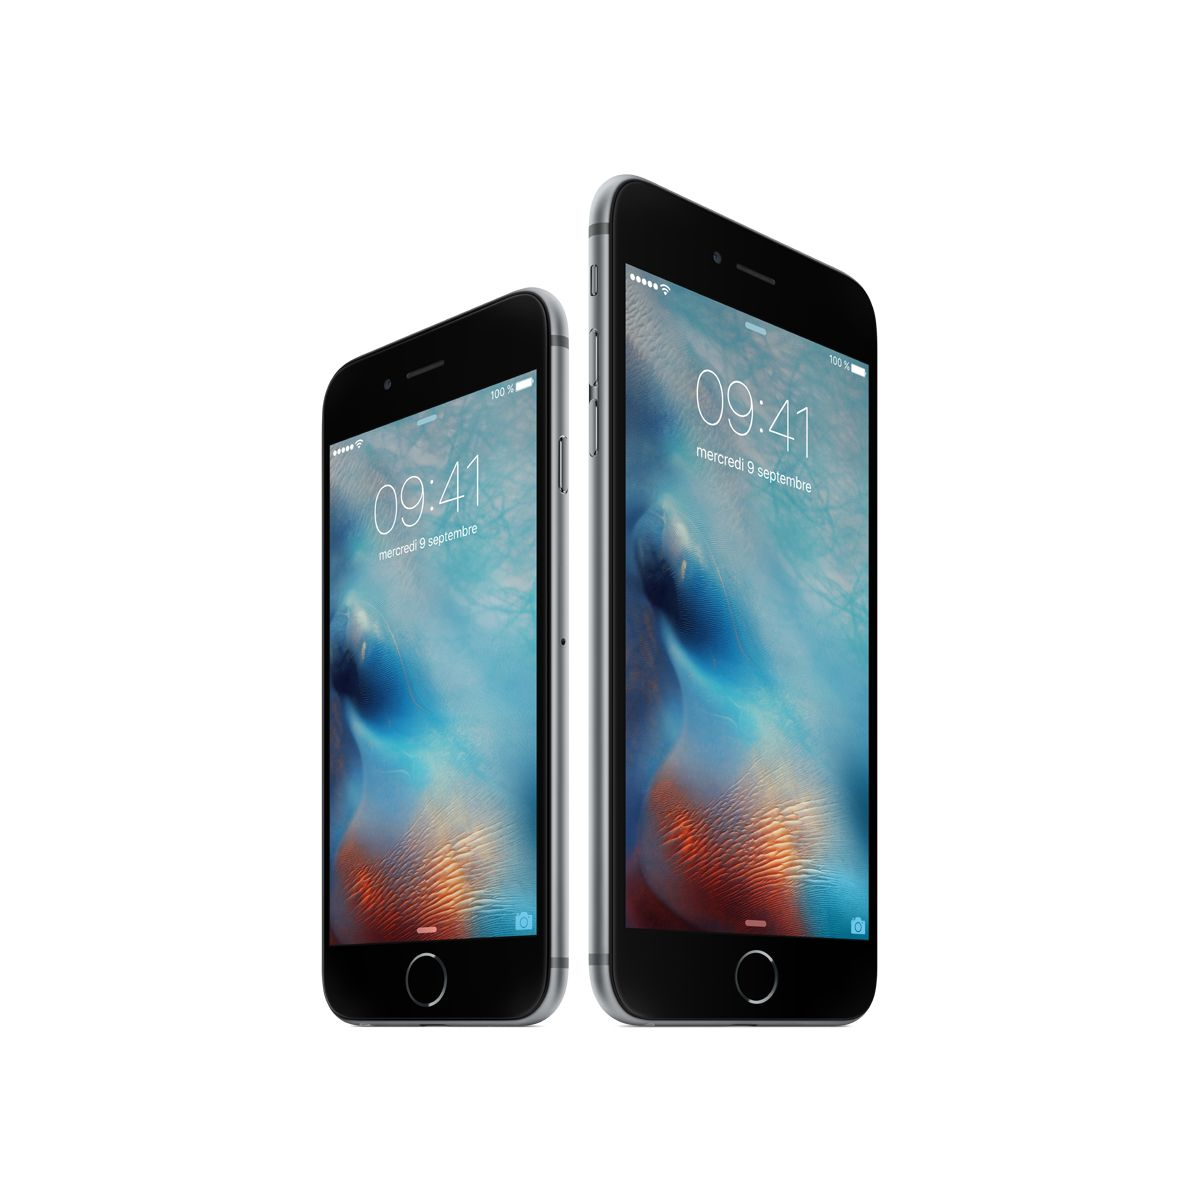 iphone iphone 6s plus silver 16go apple occasion reconditionn. Black Bedroom Furniture Sets. Home Design Ideas